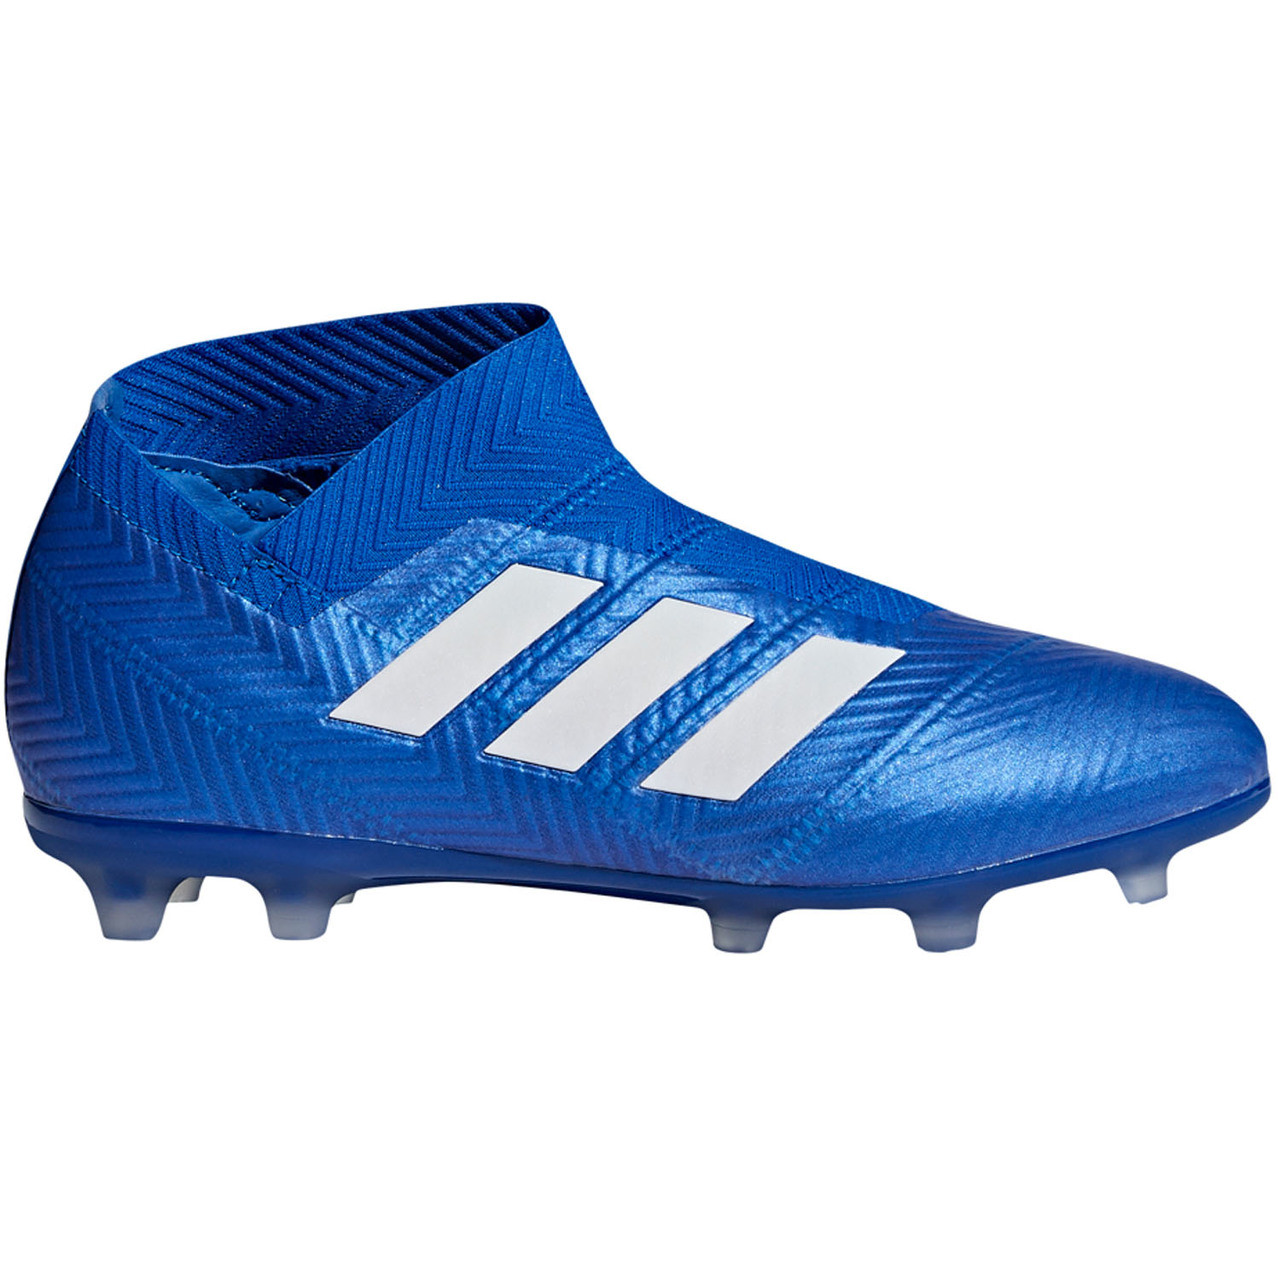 reputable site 24c86 08f01 ADIDAS NEMEZIZ 18 + FG J BLUE - Soccer Plus